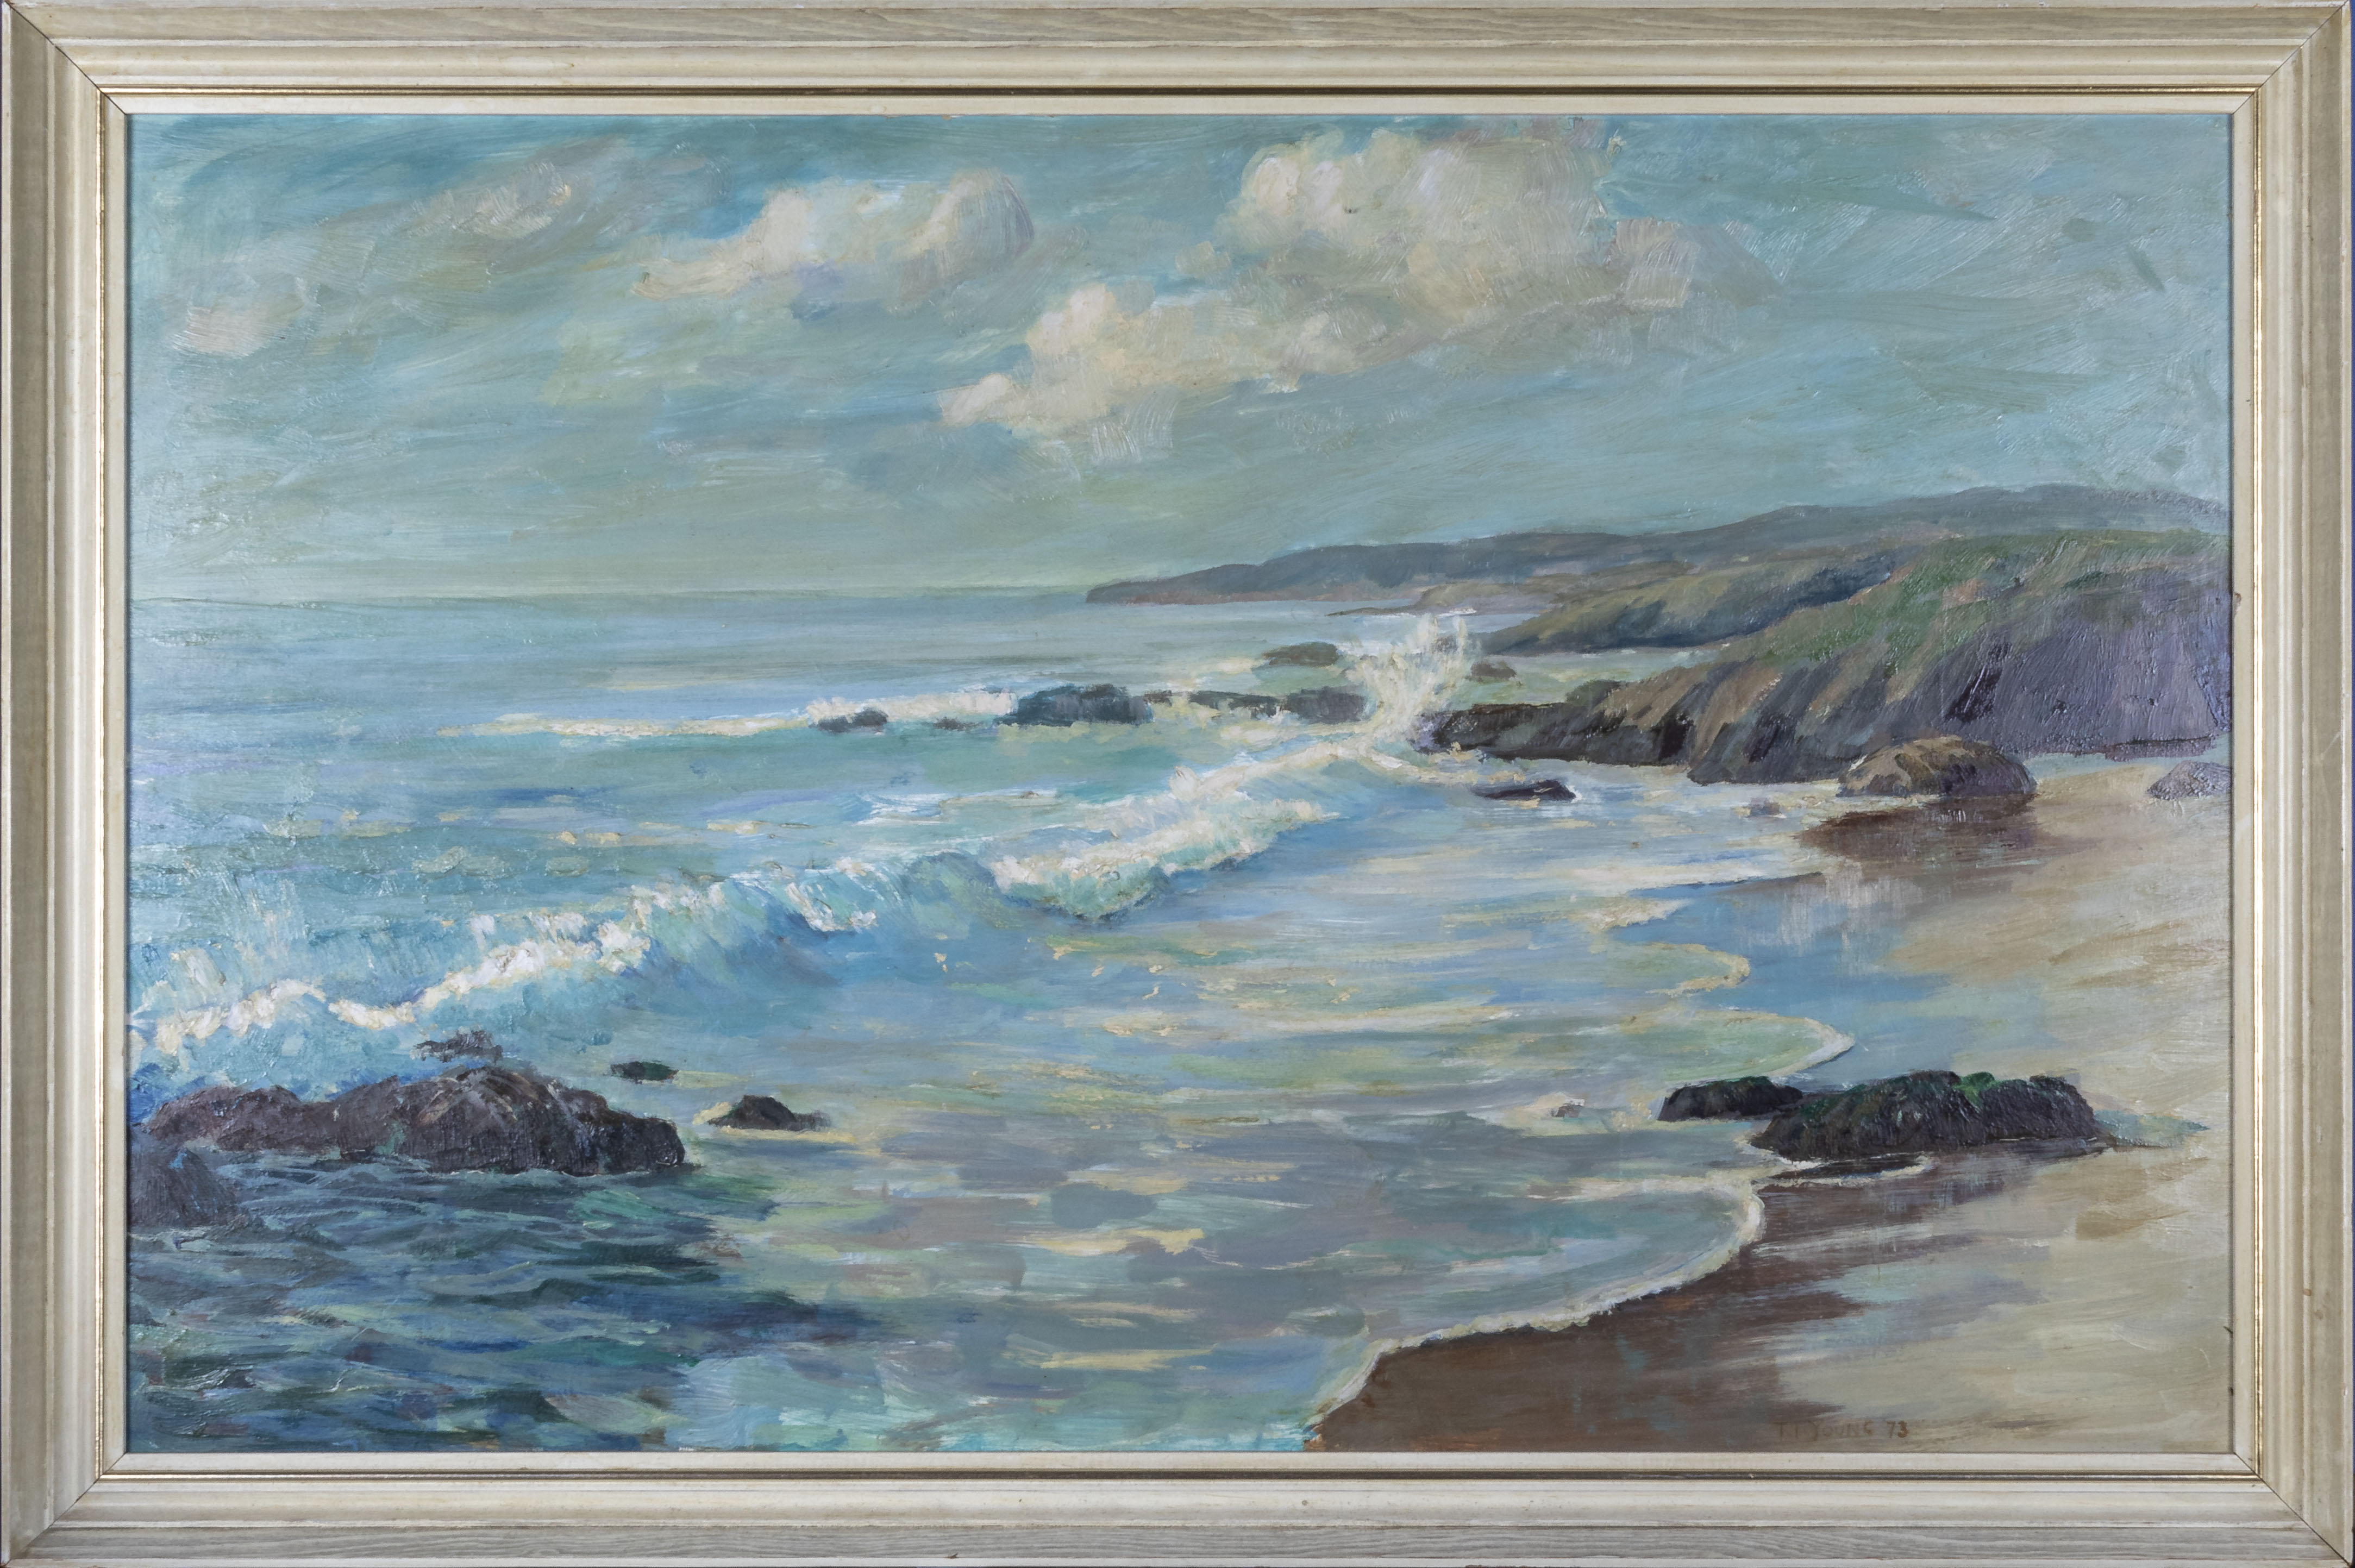 Lot 14 - A large framed oil on board depicting a seascape, total size 51cm x 77cm